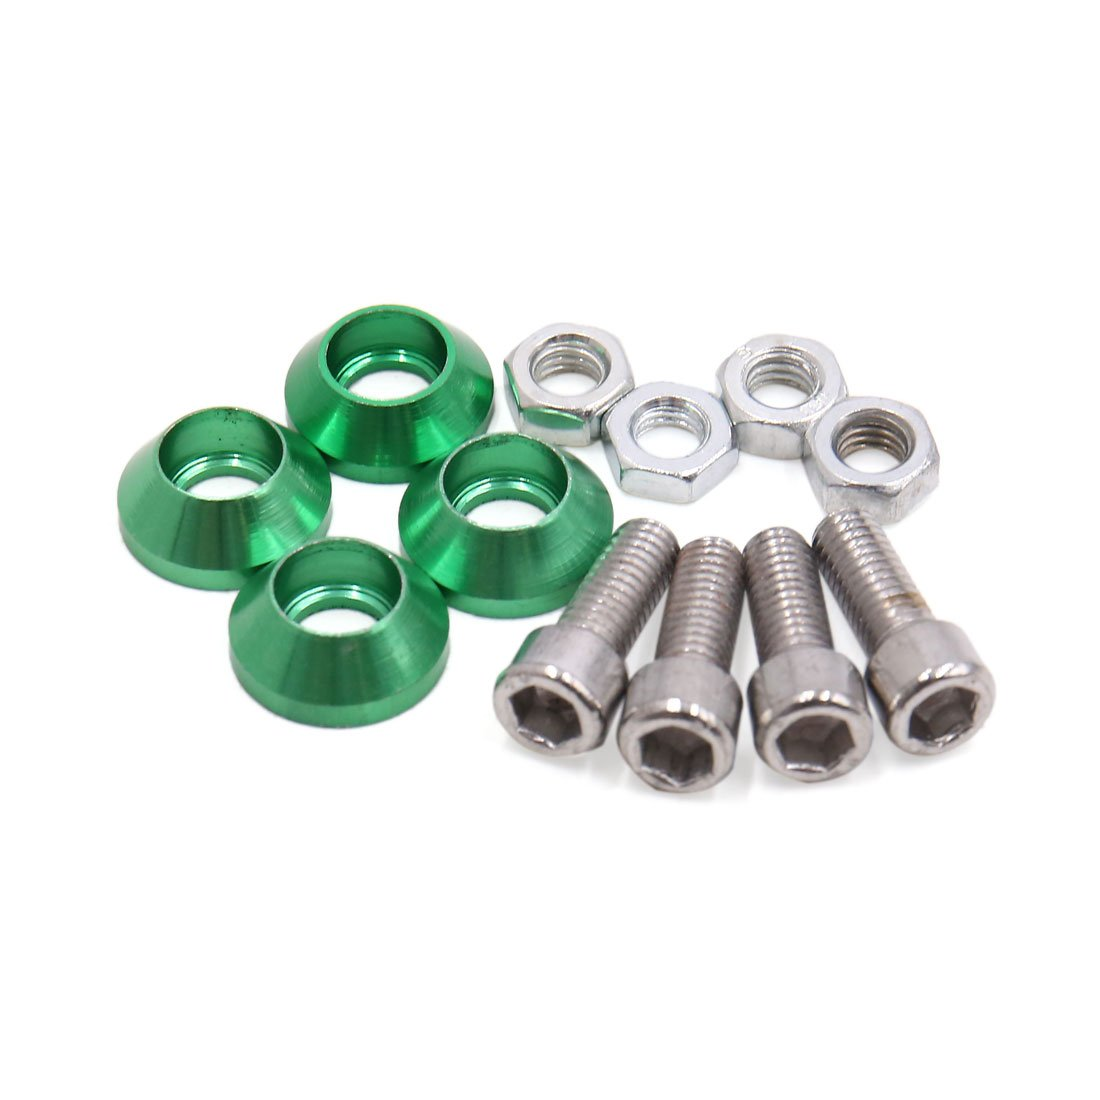 uxcell Universal Green Metal Motorcycle Windscreen License Plate M6 Bolts Screw 4Pcs a17061900ux1438